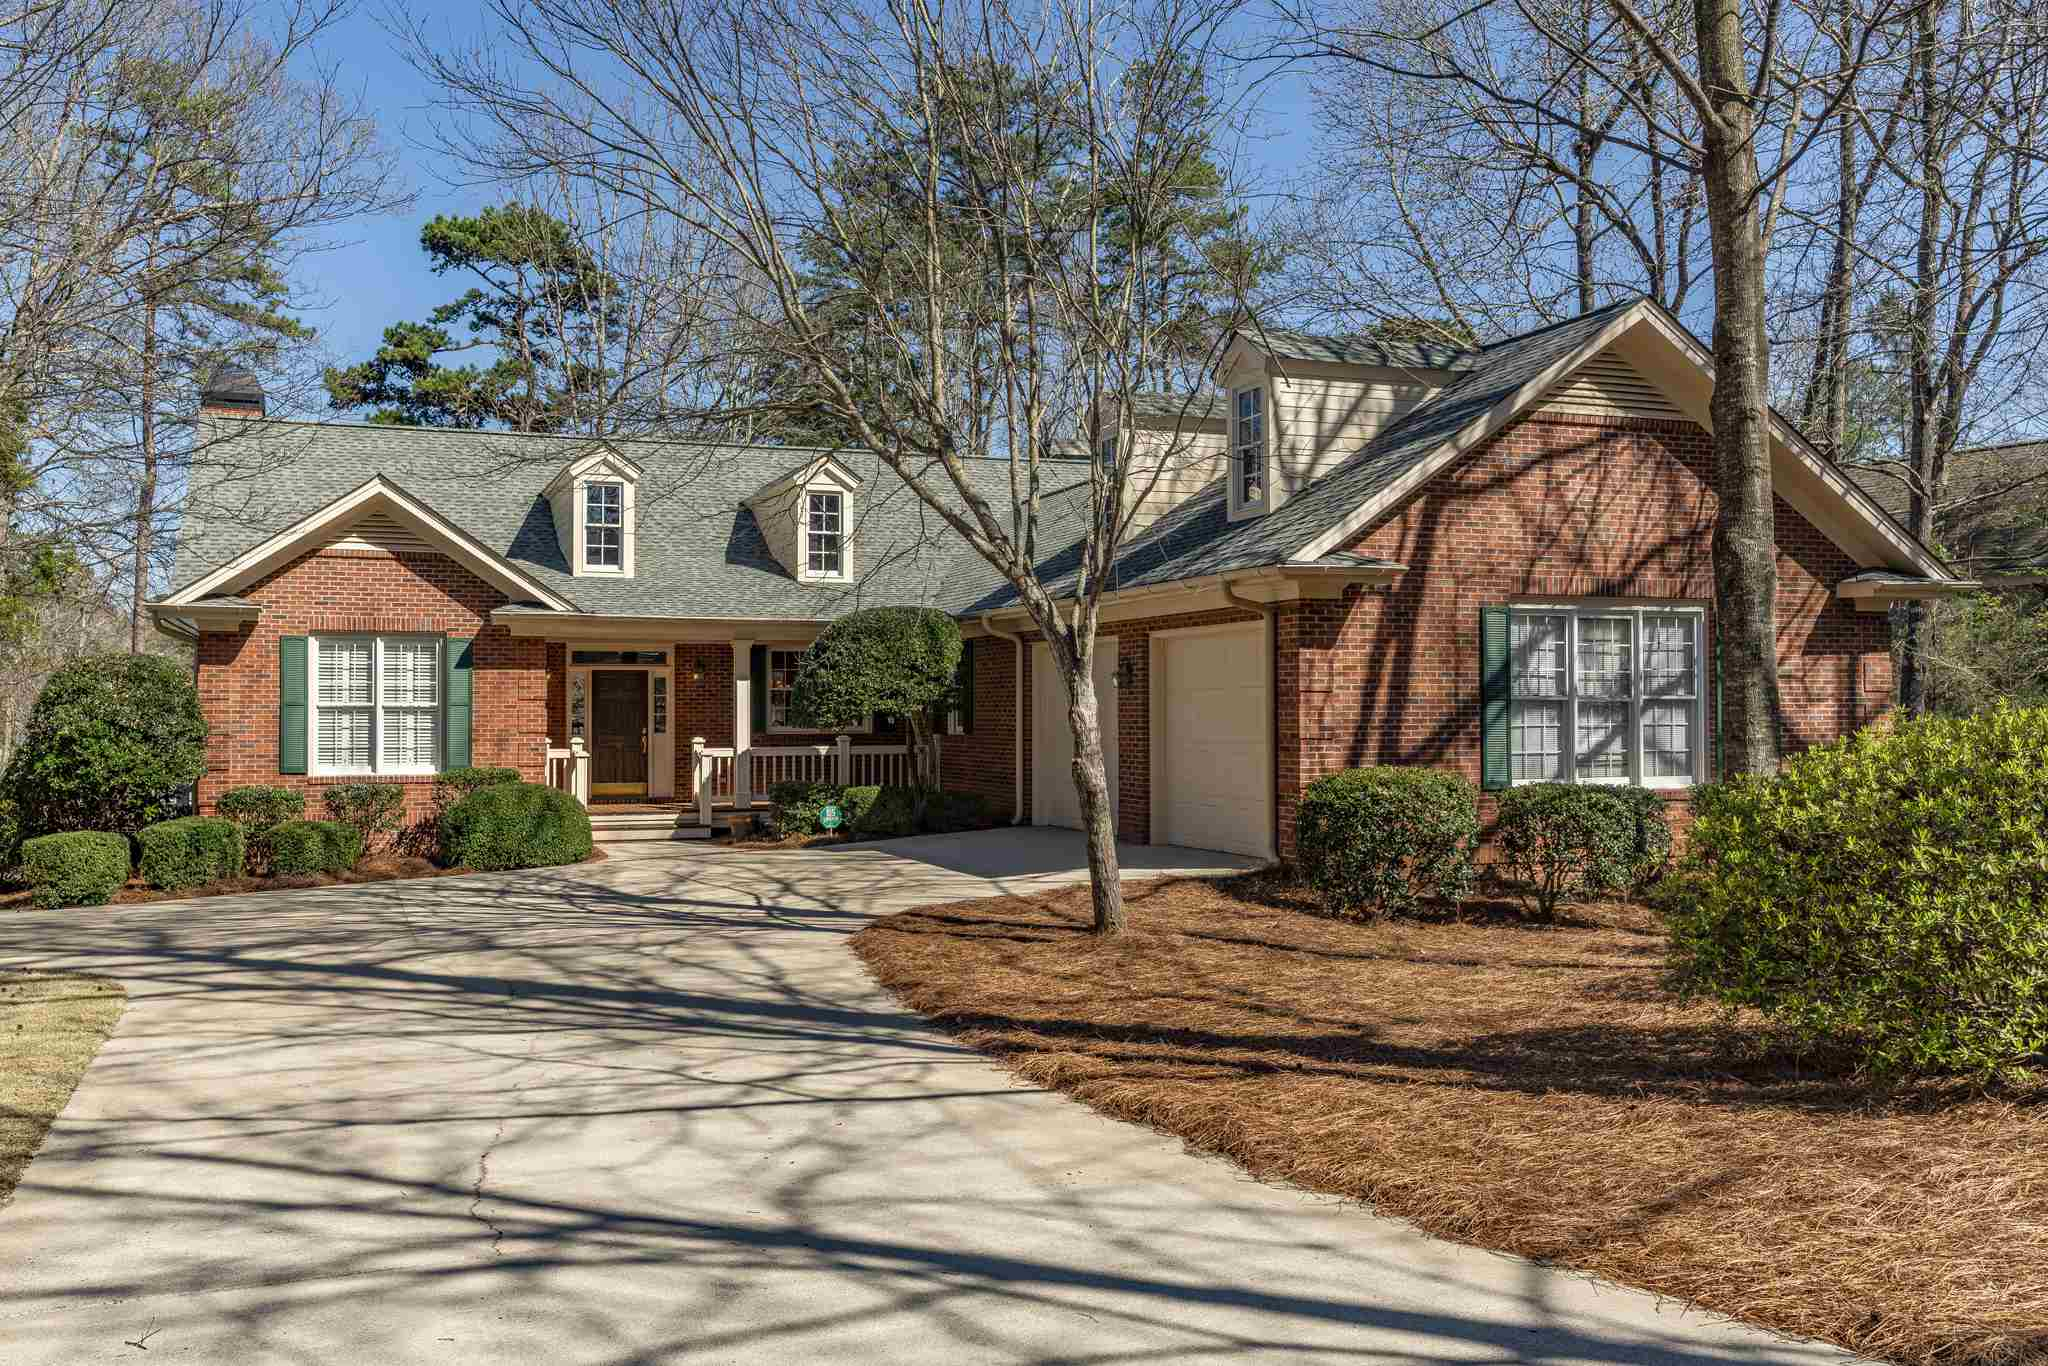 117 SOUTH LOOK LANE, Great Waters, Georgia 4 Bedroom as one of Homes & Land Real Estate